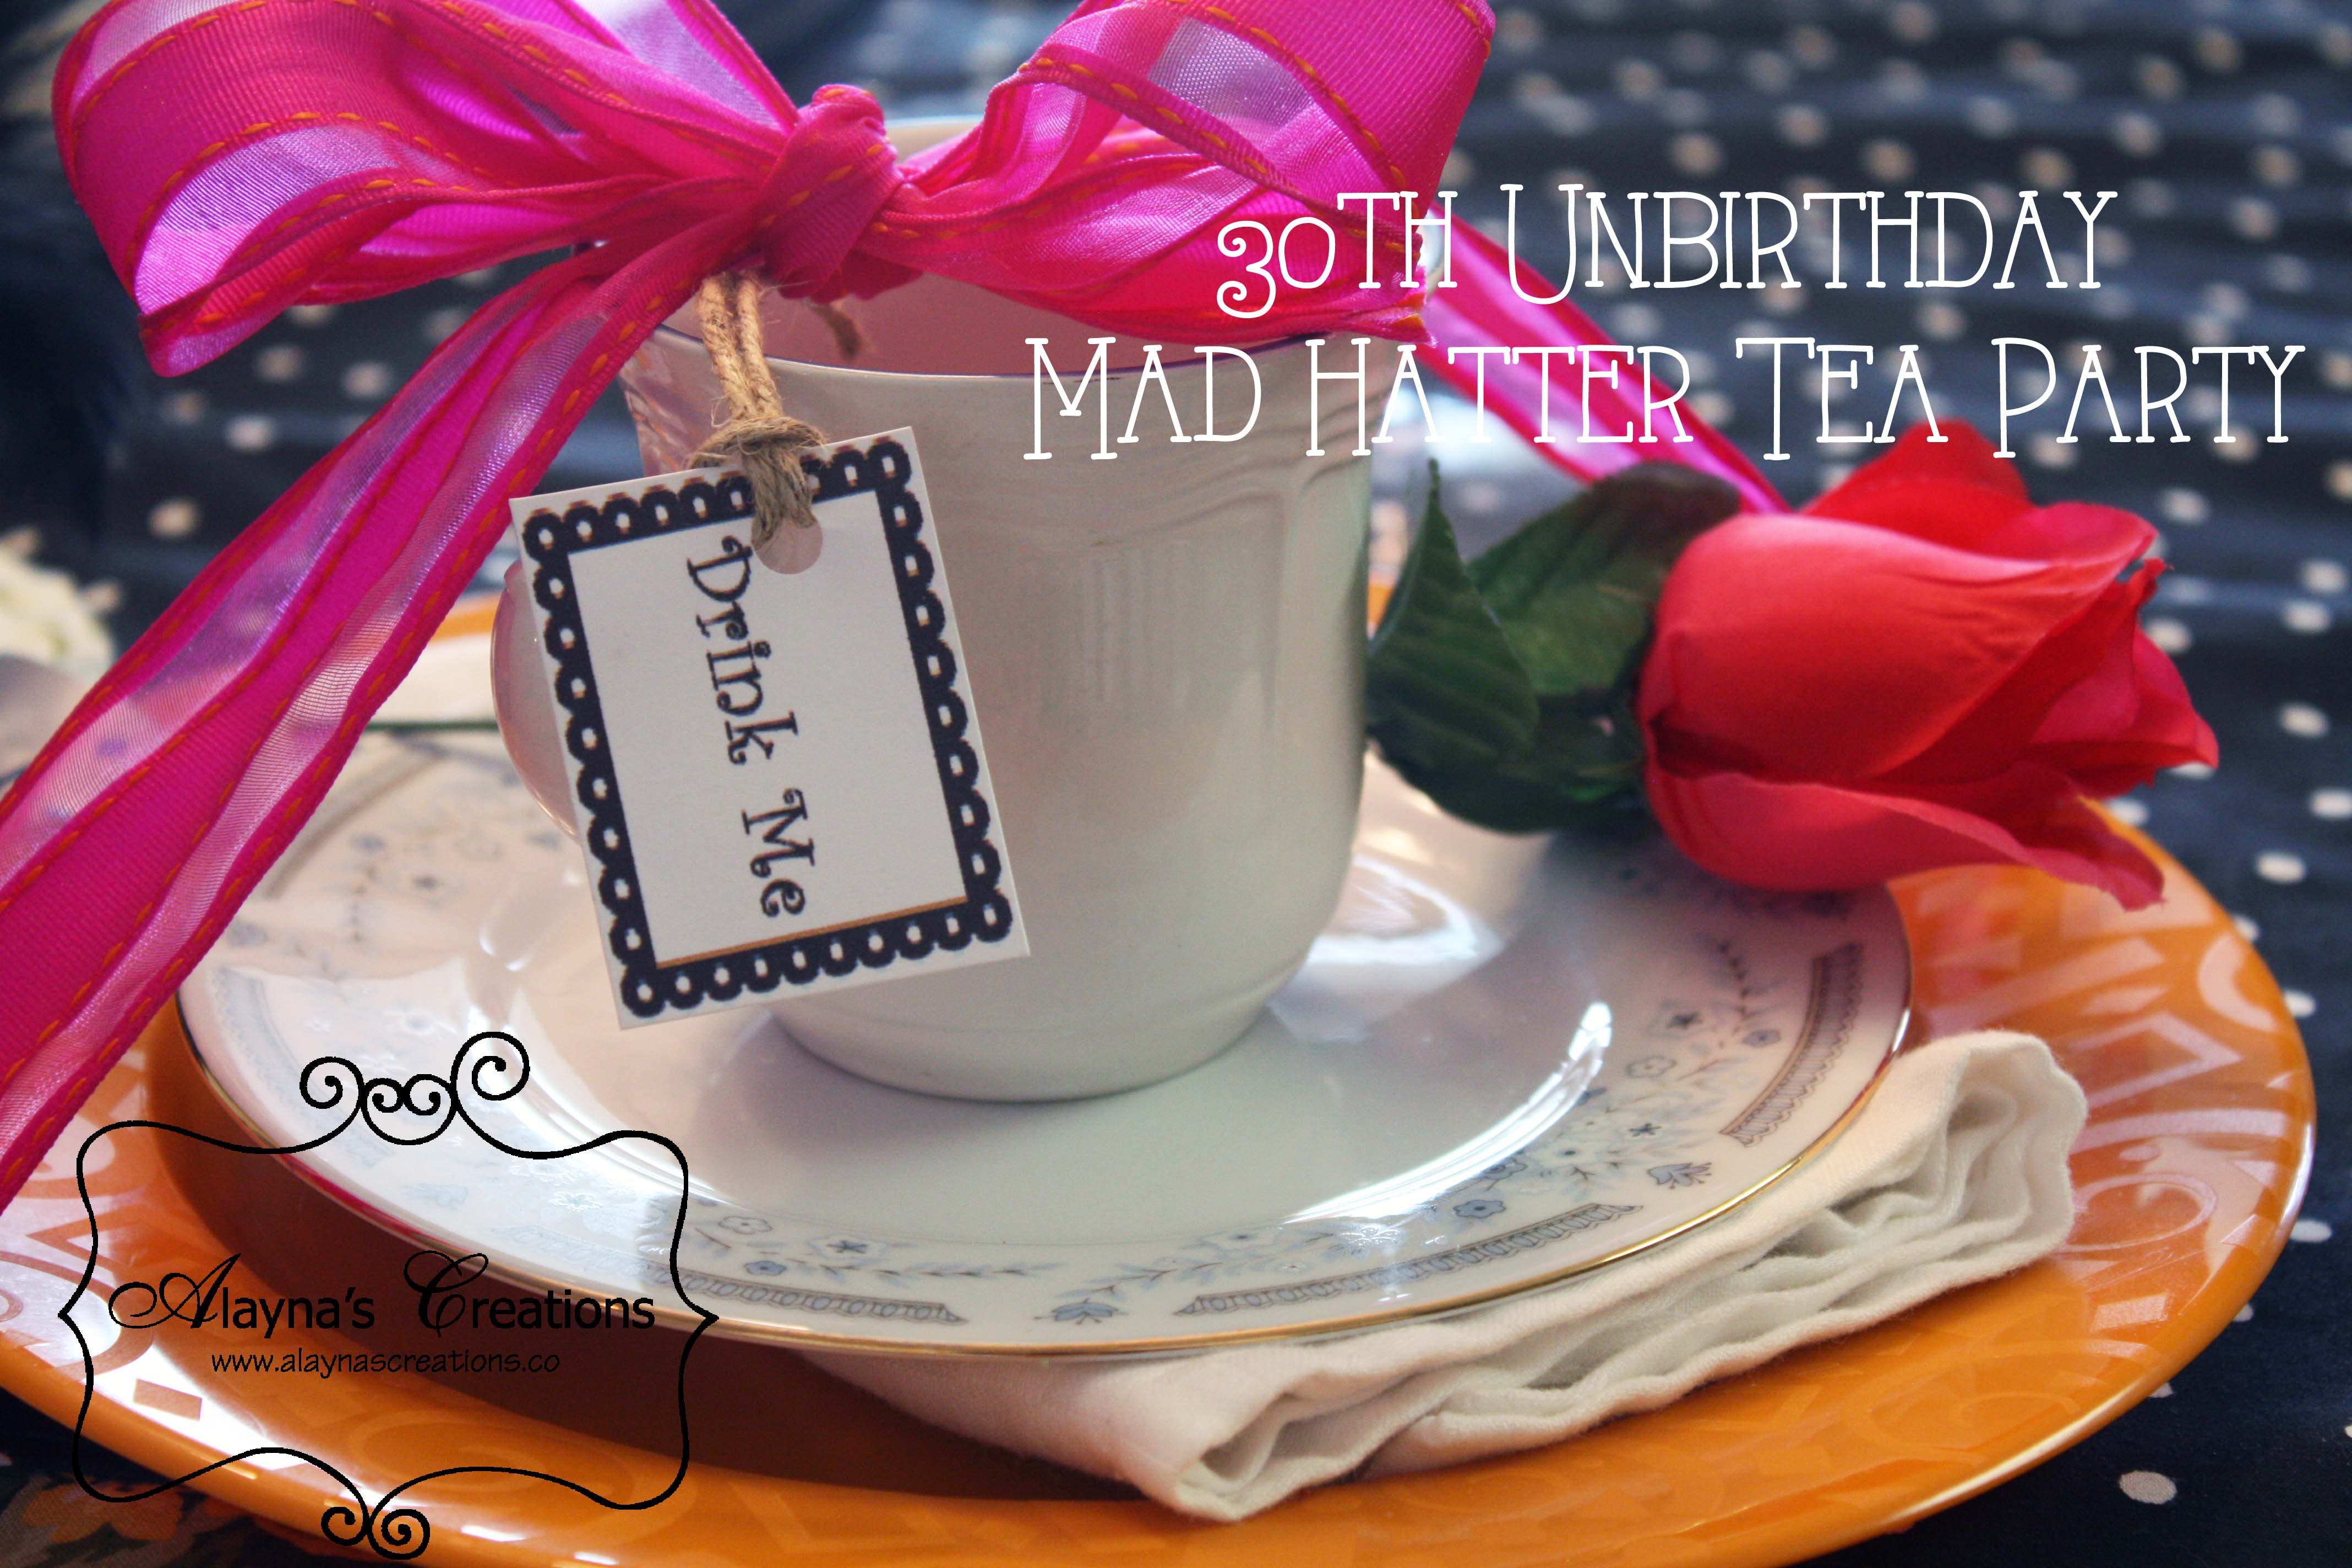 Alice In Wonderland Mad Hatter Tea Party Place Setting